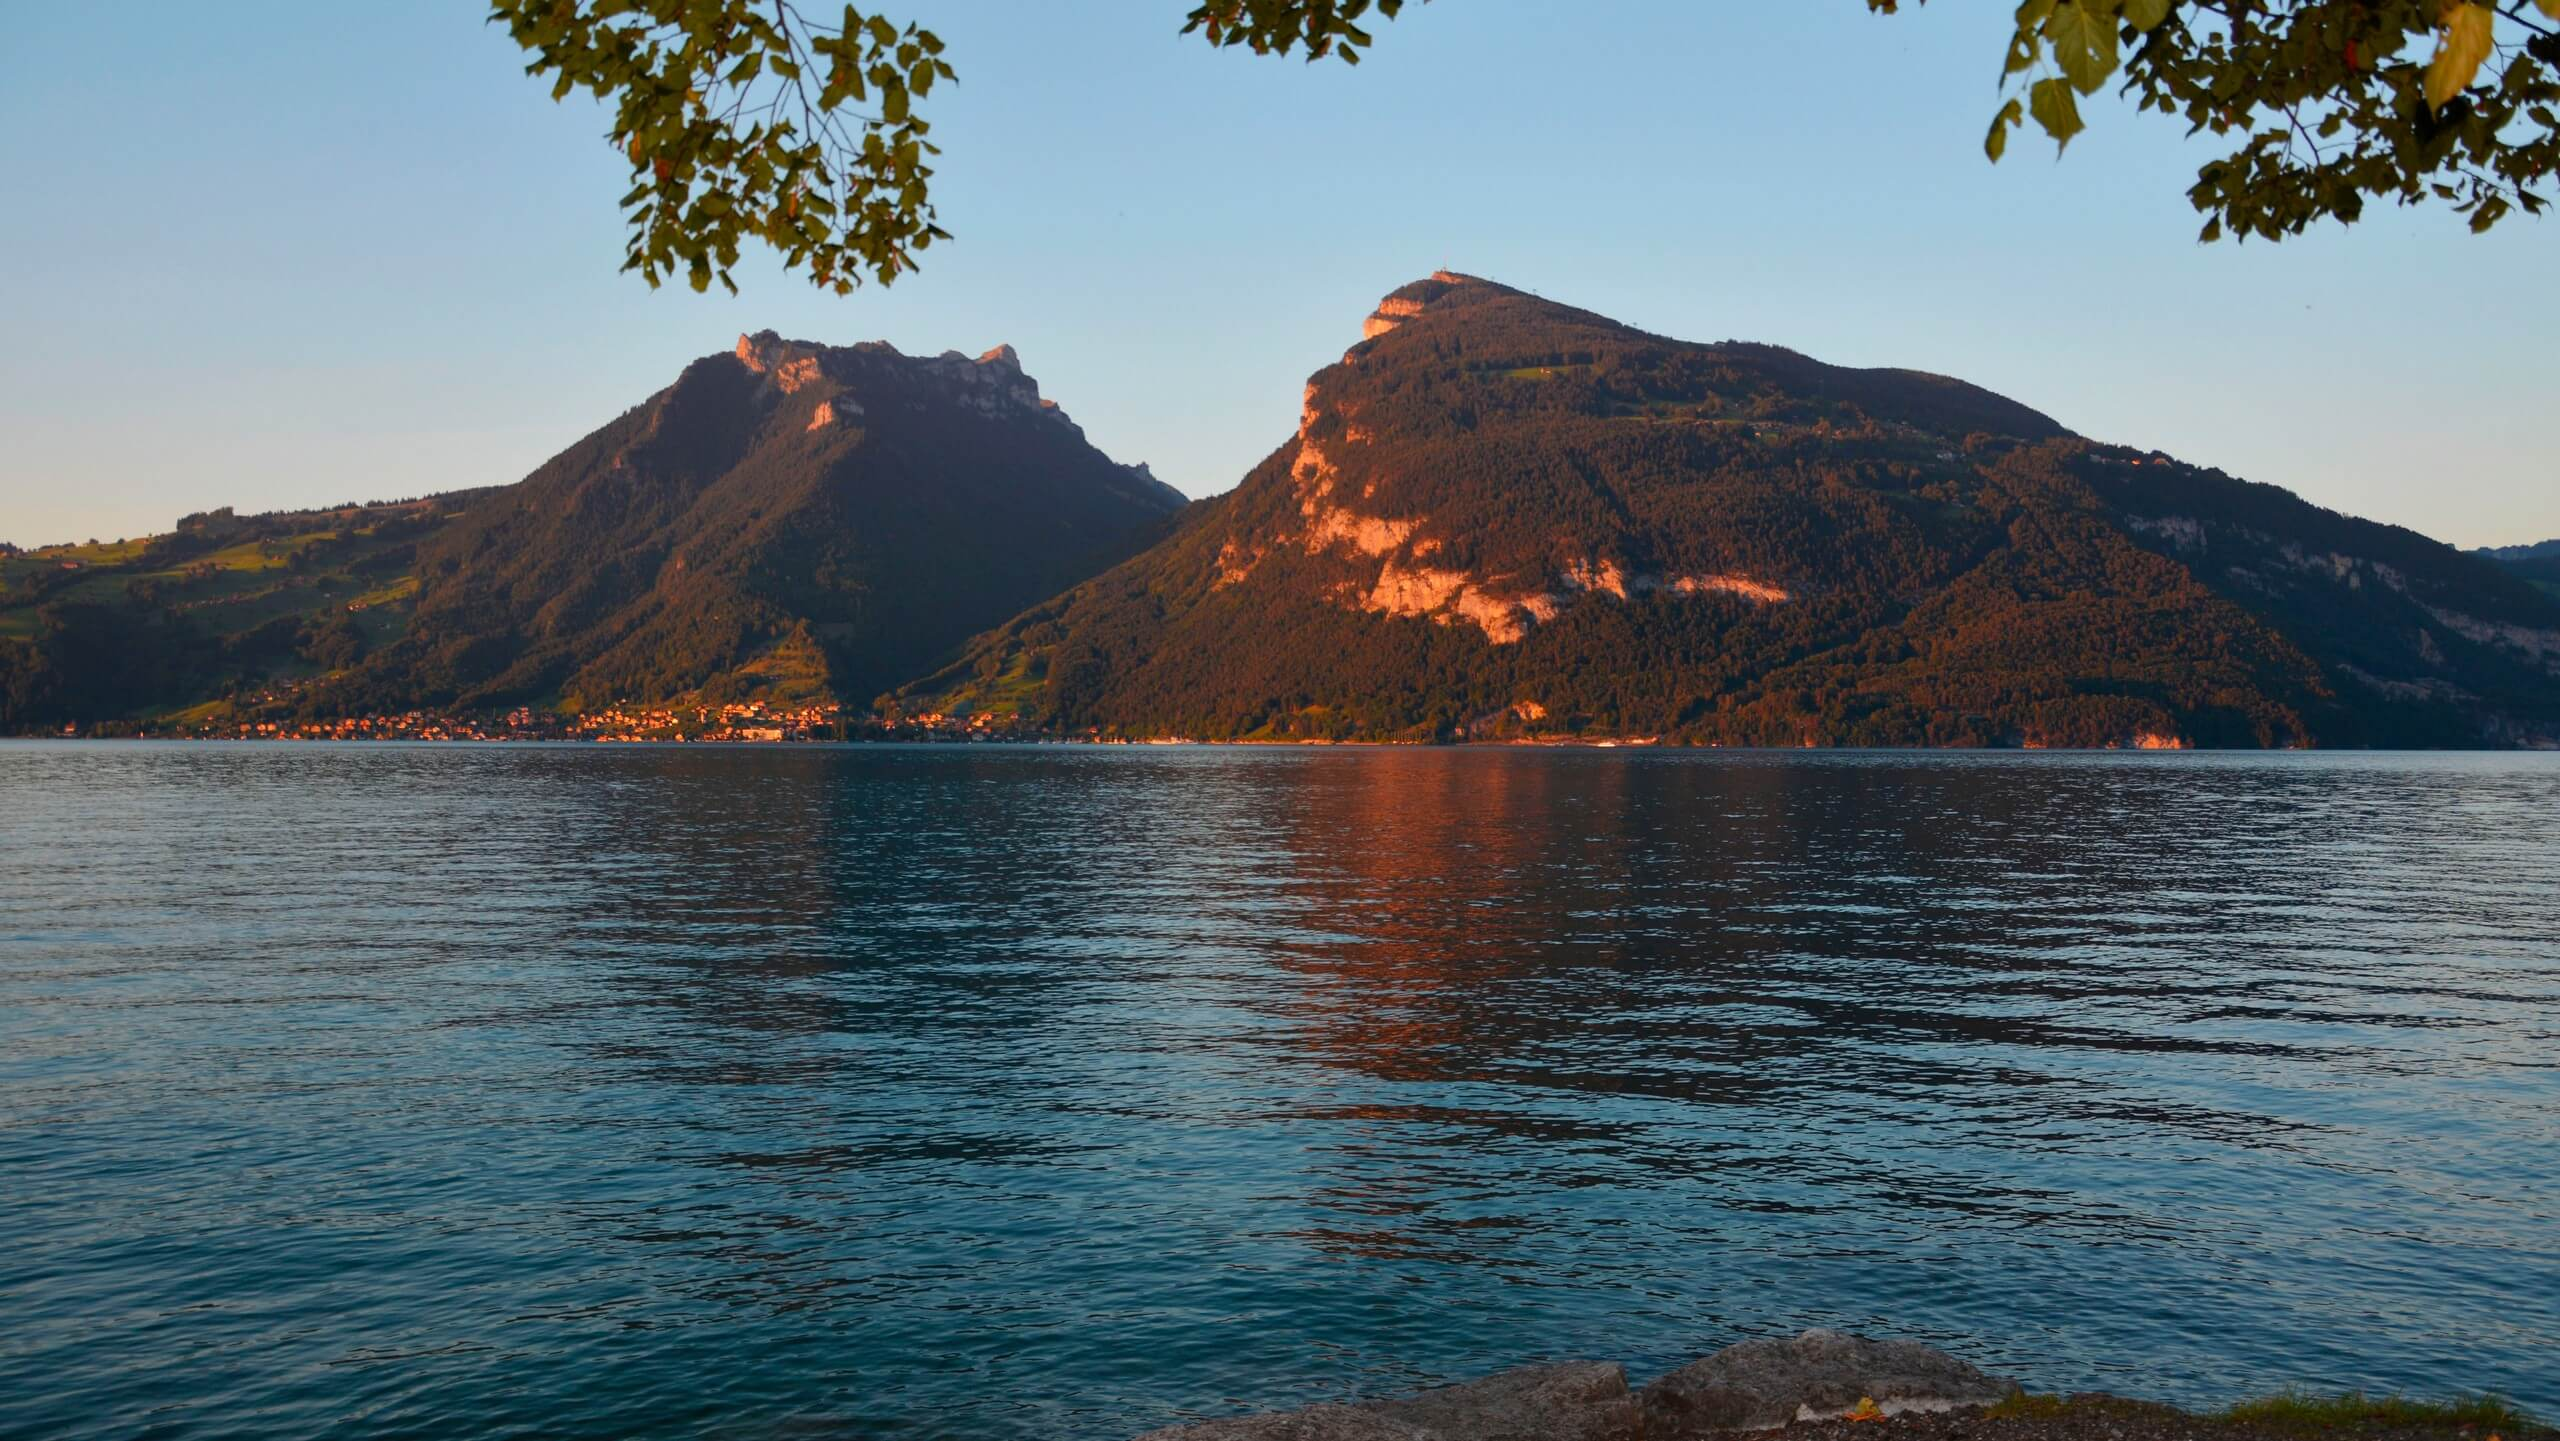 faulensee-sommer-blue-turtle-ausblick-thunersee